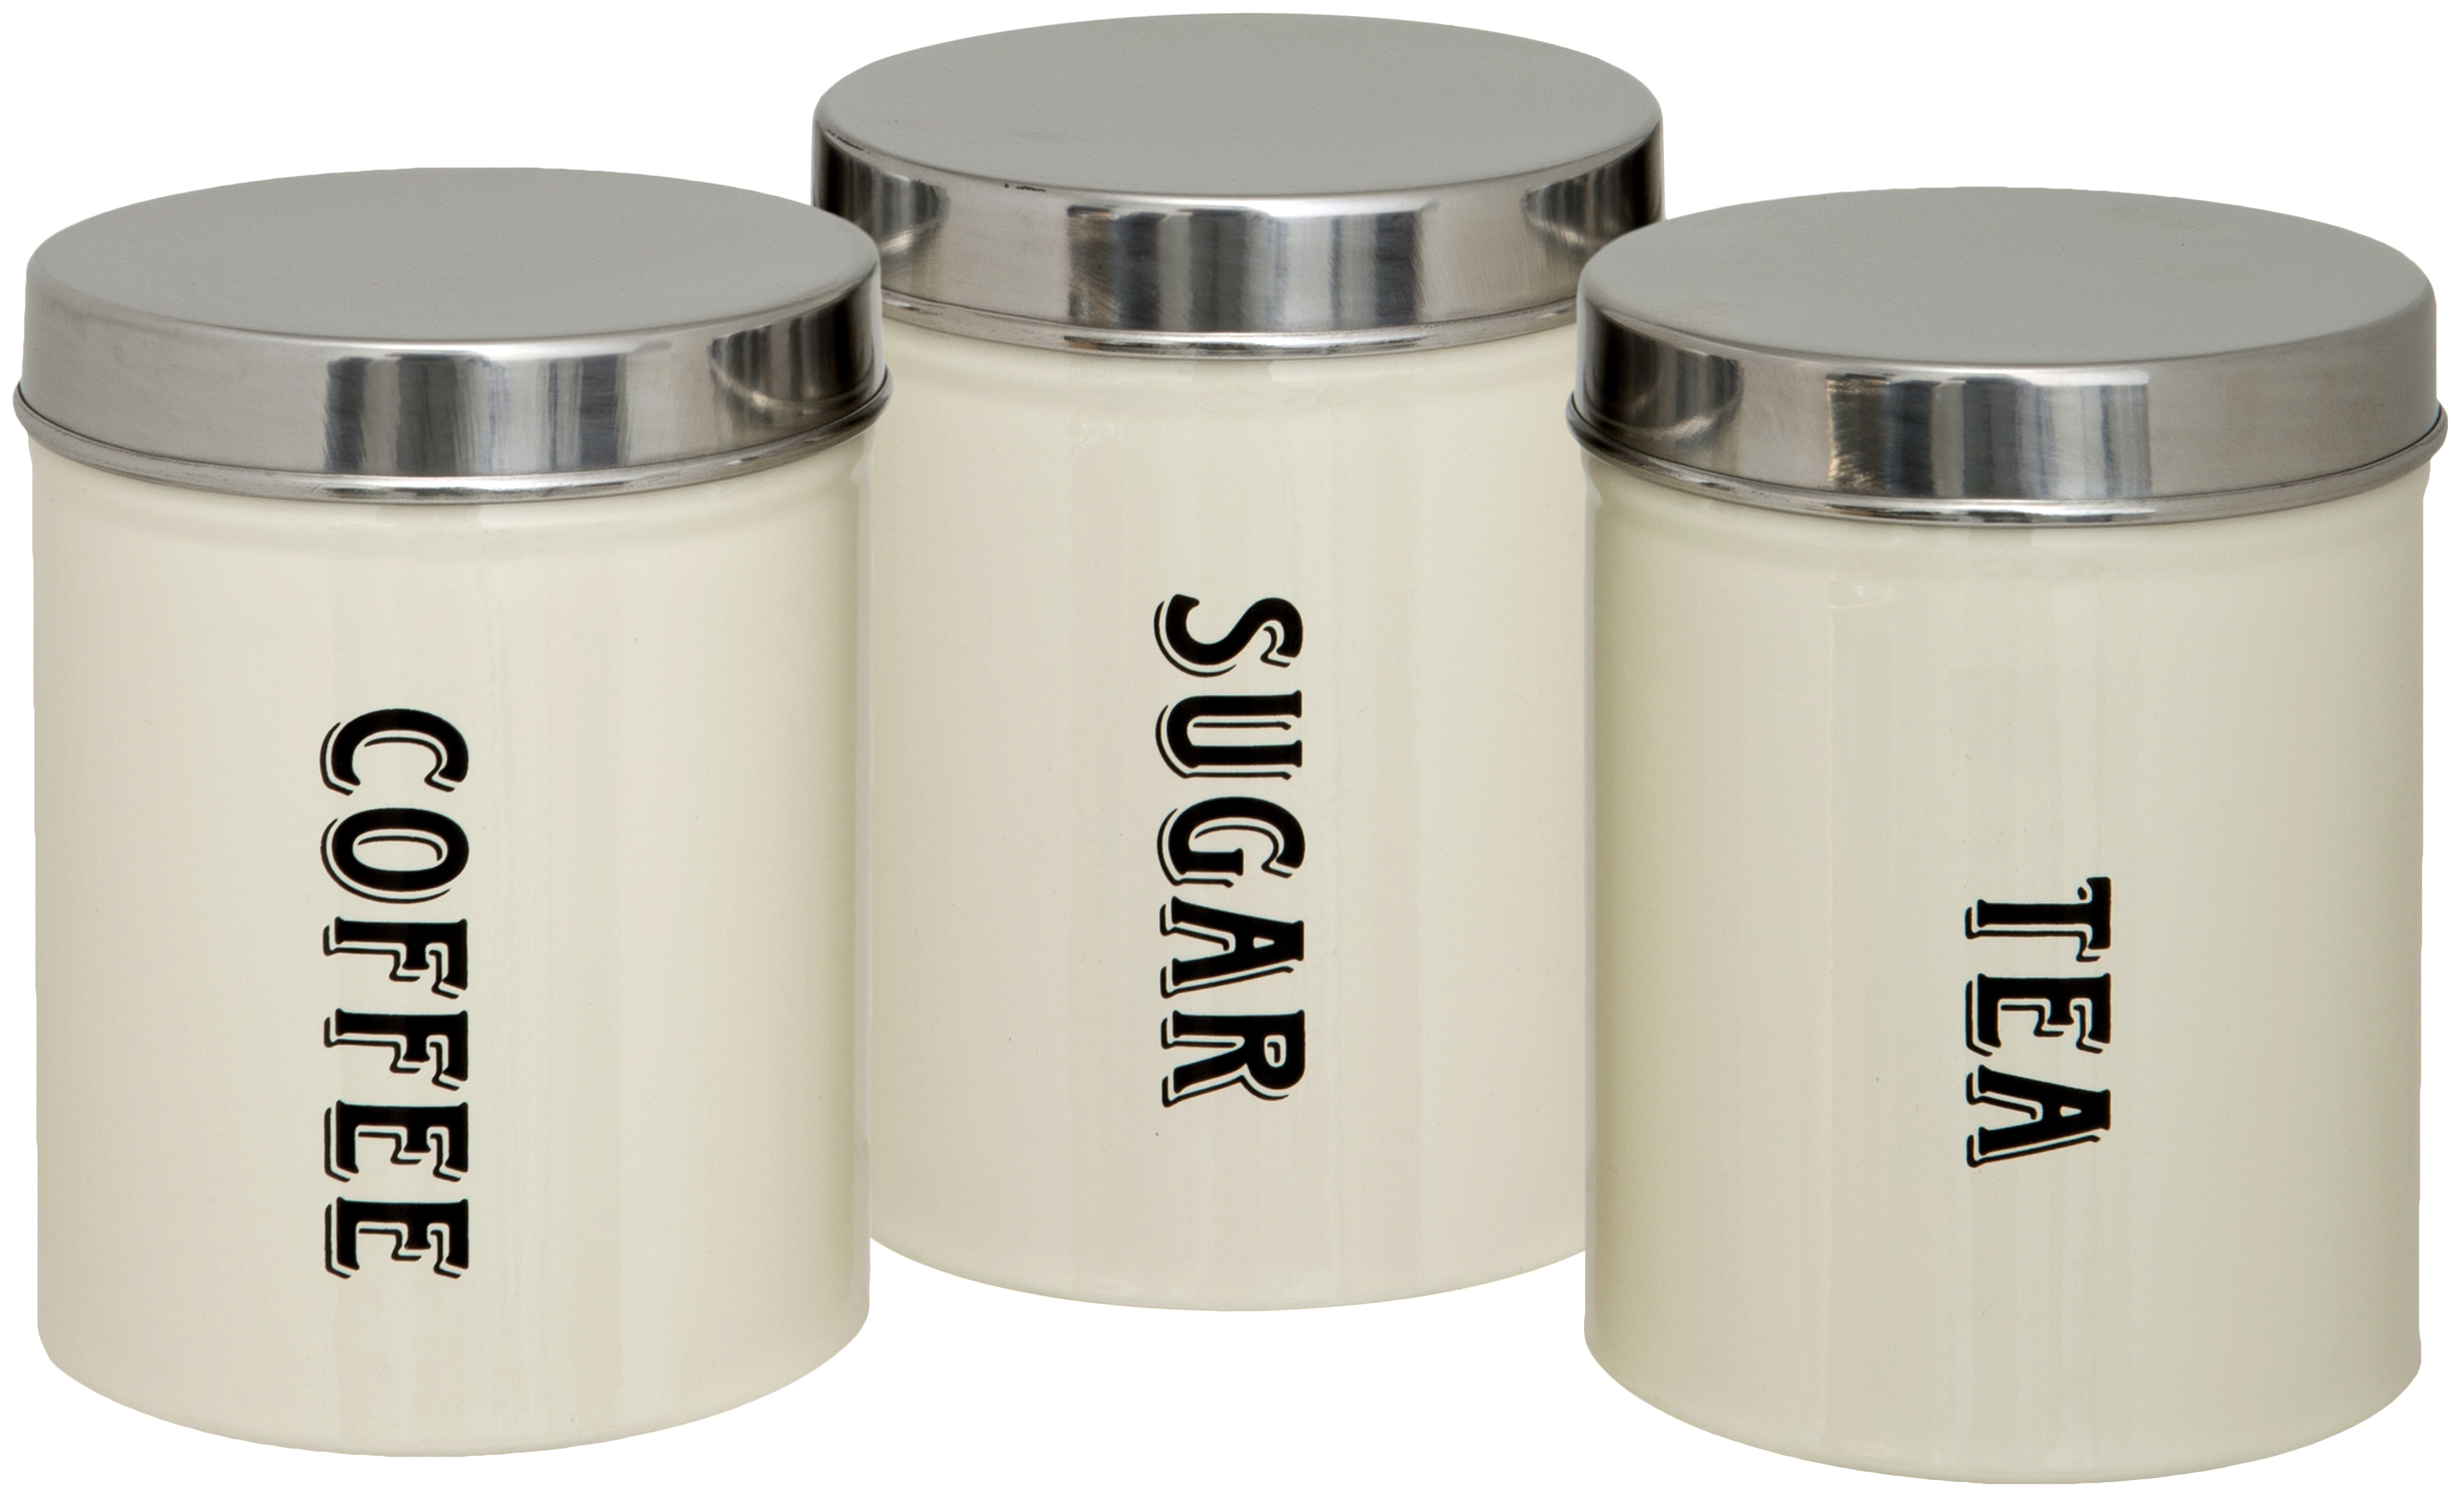 Set Of 3 New Tea Coffee Sugar Kitchen Storage Canisters Jars Pots Containers Set